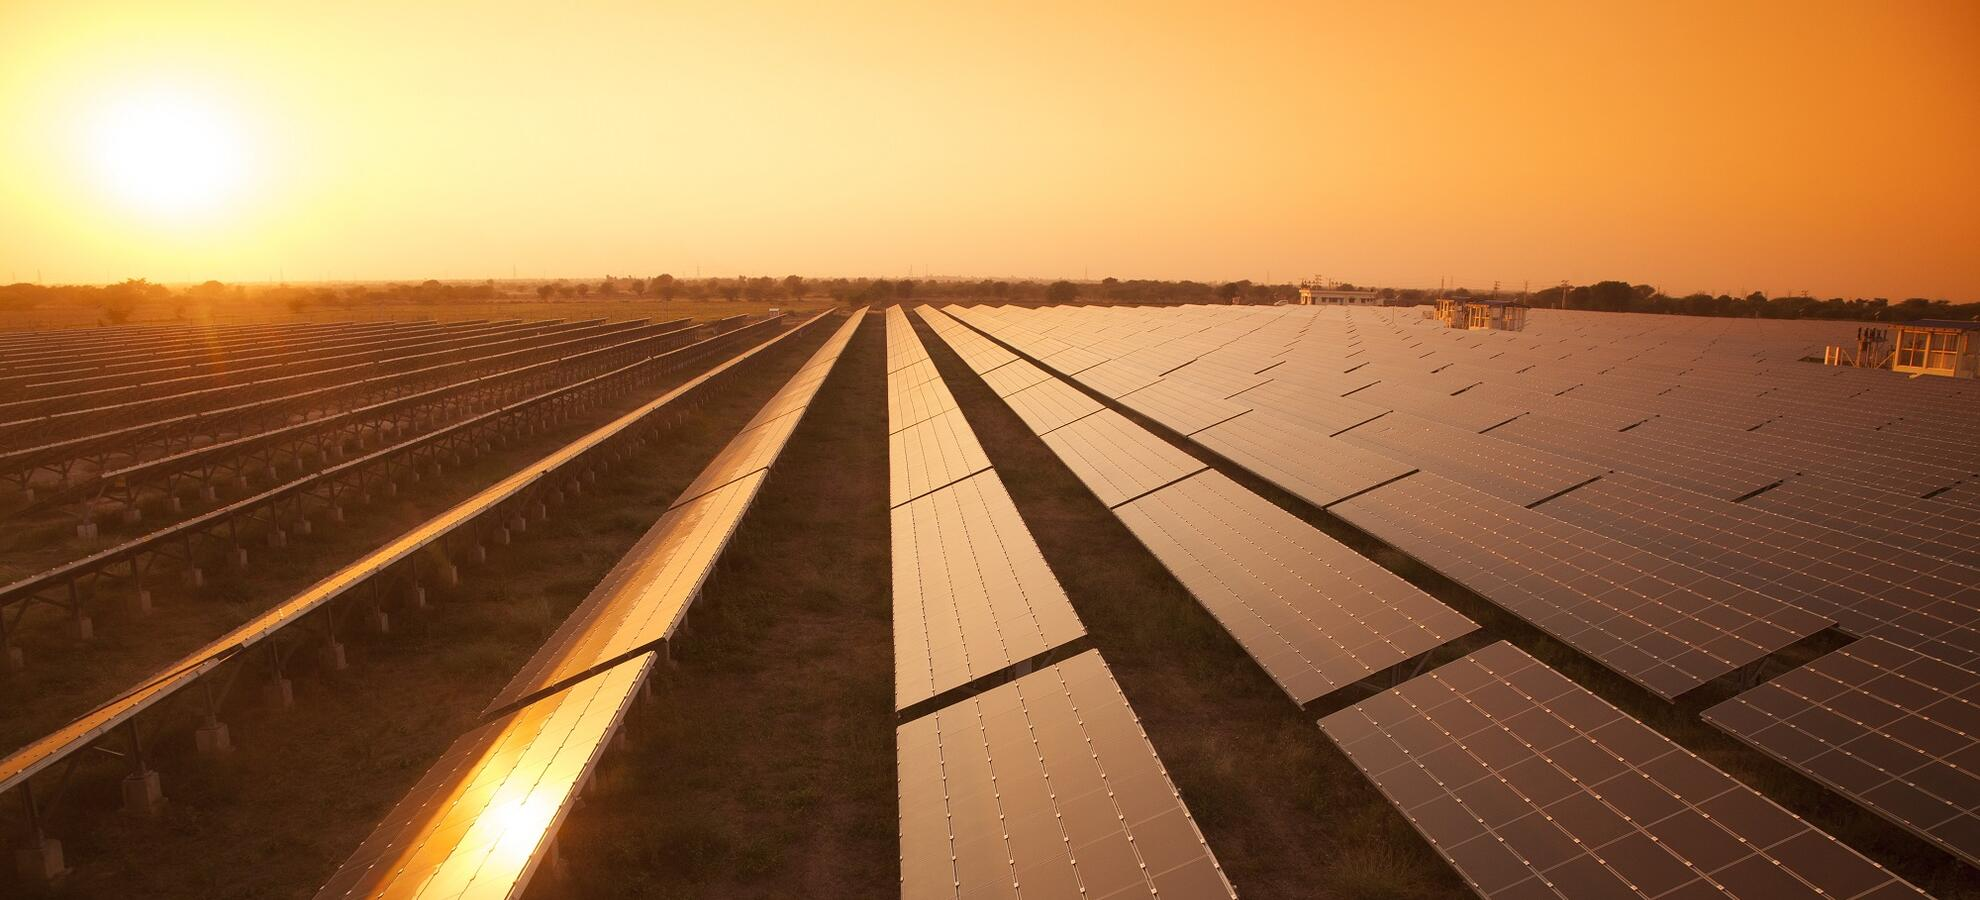 Solar energy - facts and advantages about solar power | Fortum